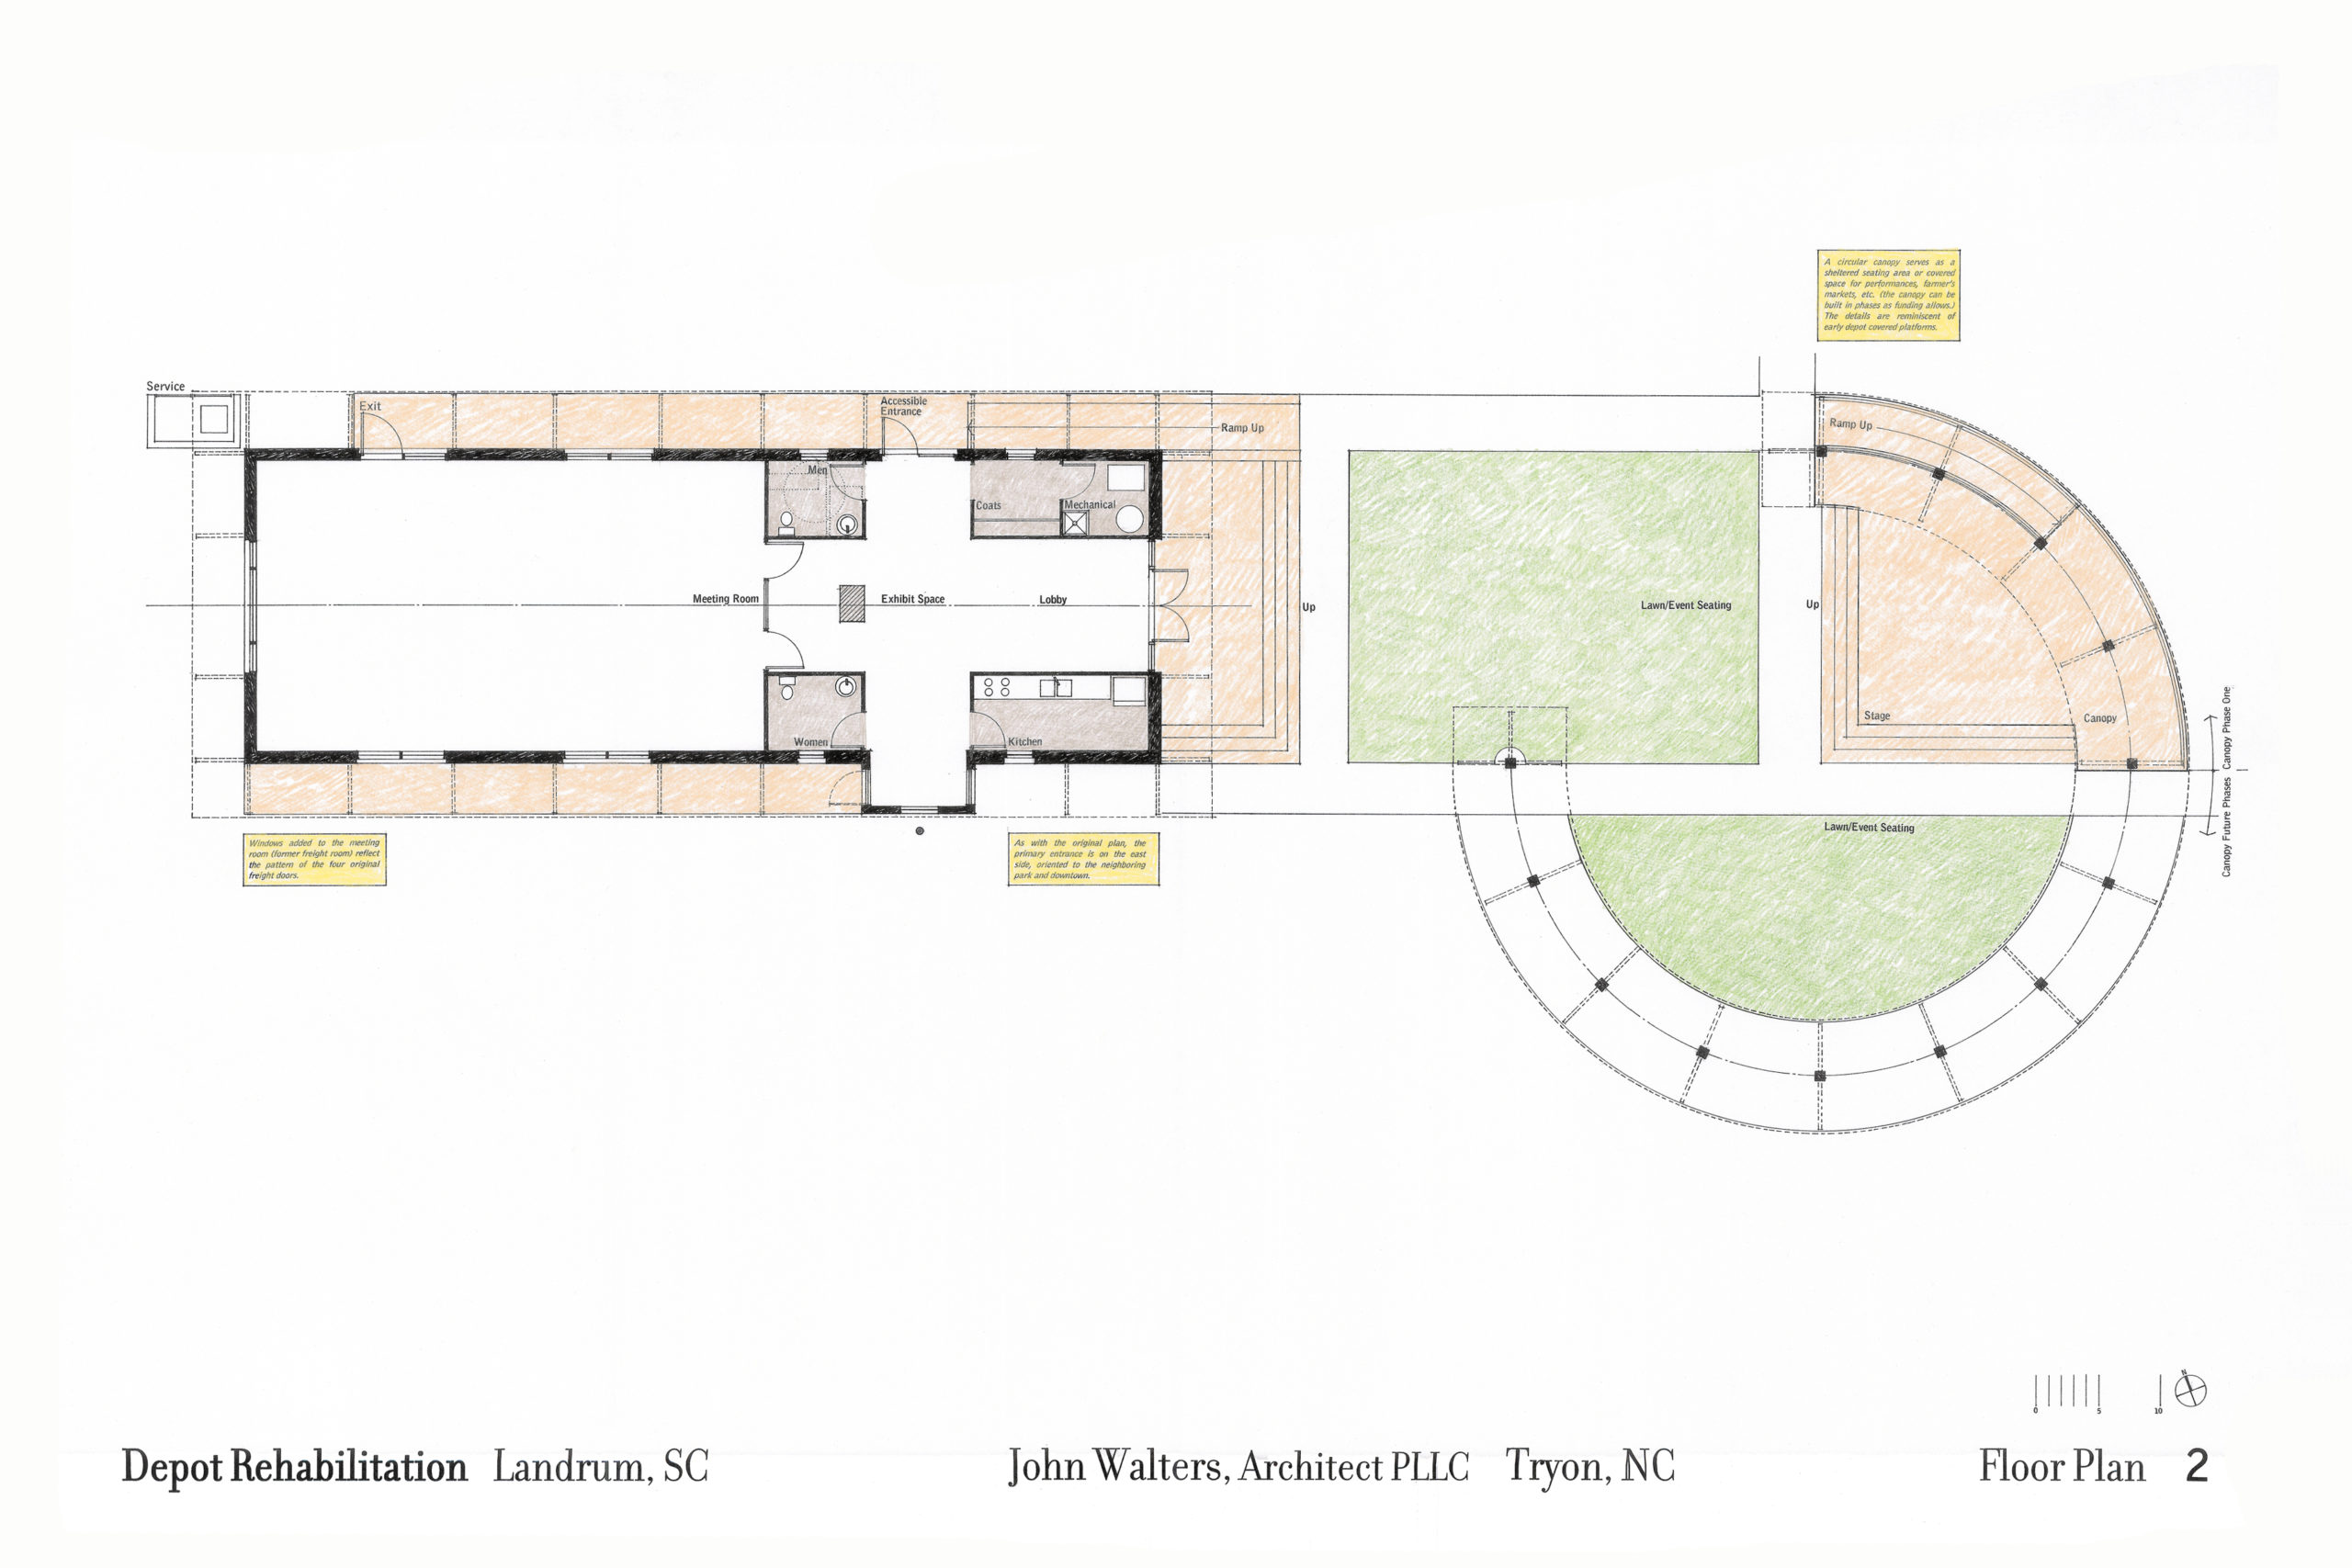 Site plan showing depot and exterior covered shelter.